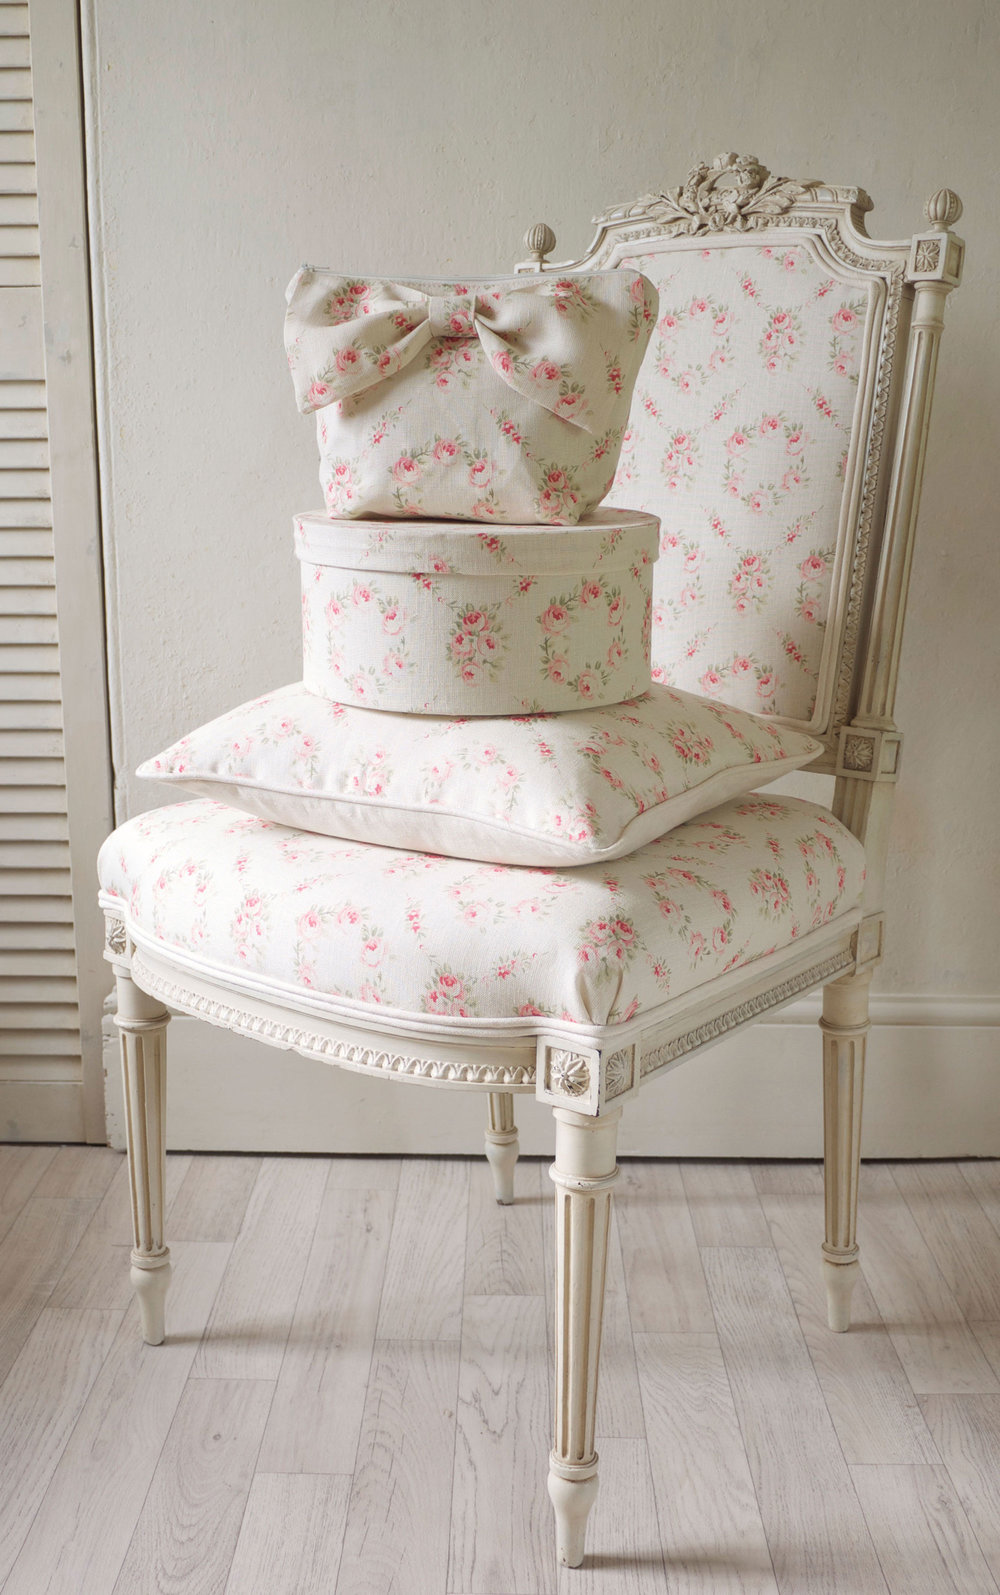 rose-garland-chair-gallery.jpg